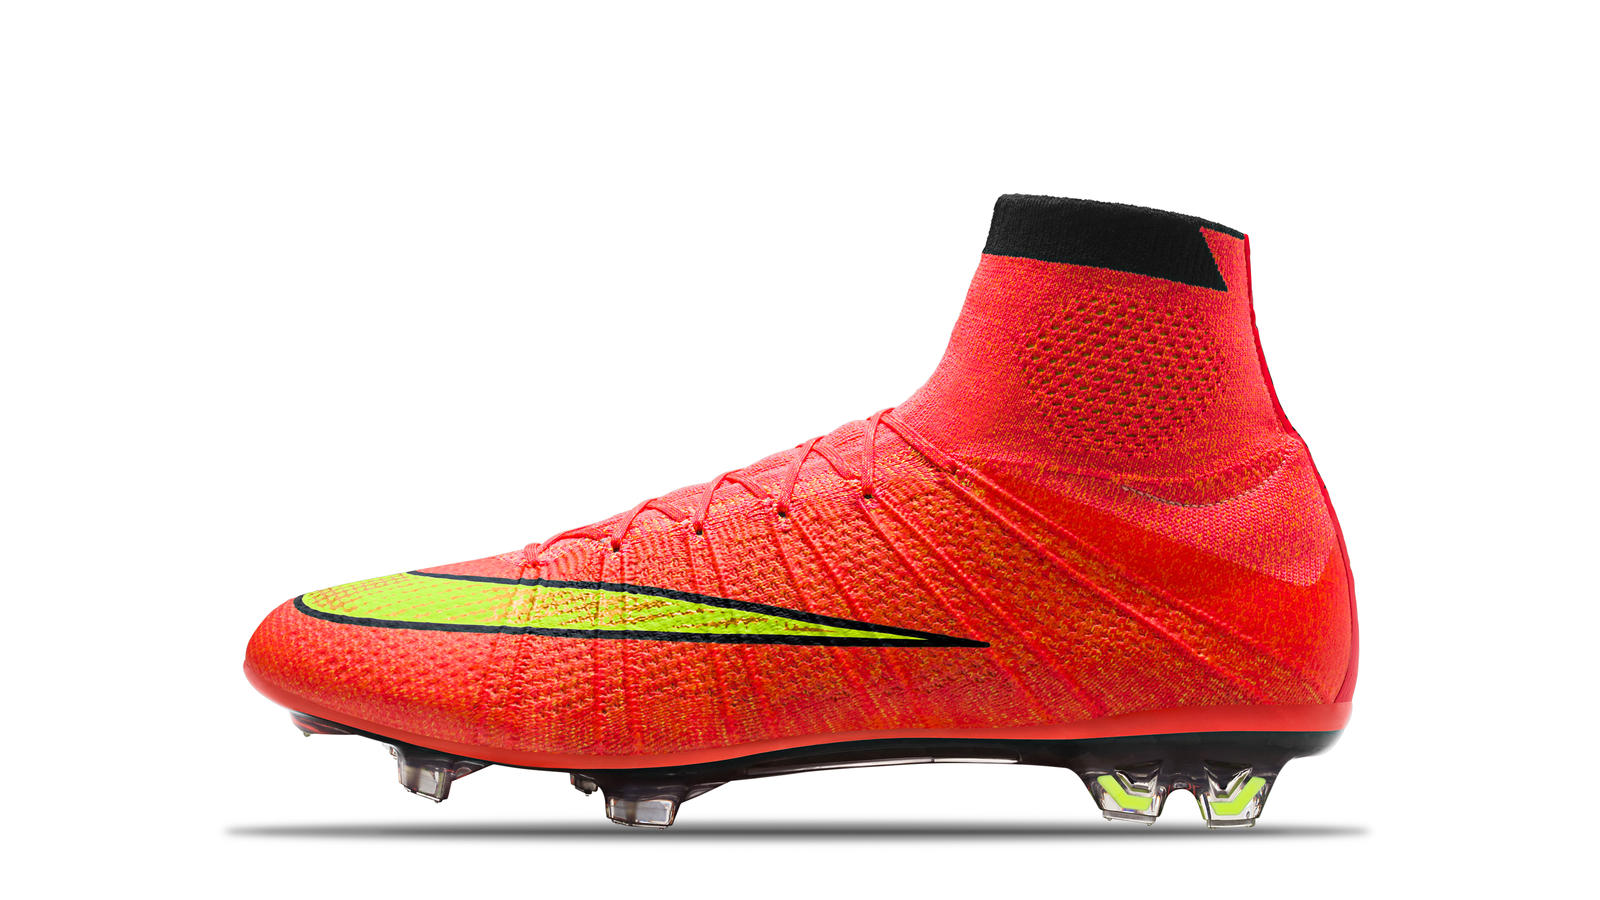 2014 Mercurial Superfly IV Hyper Punch Gold Black